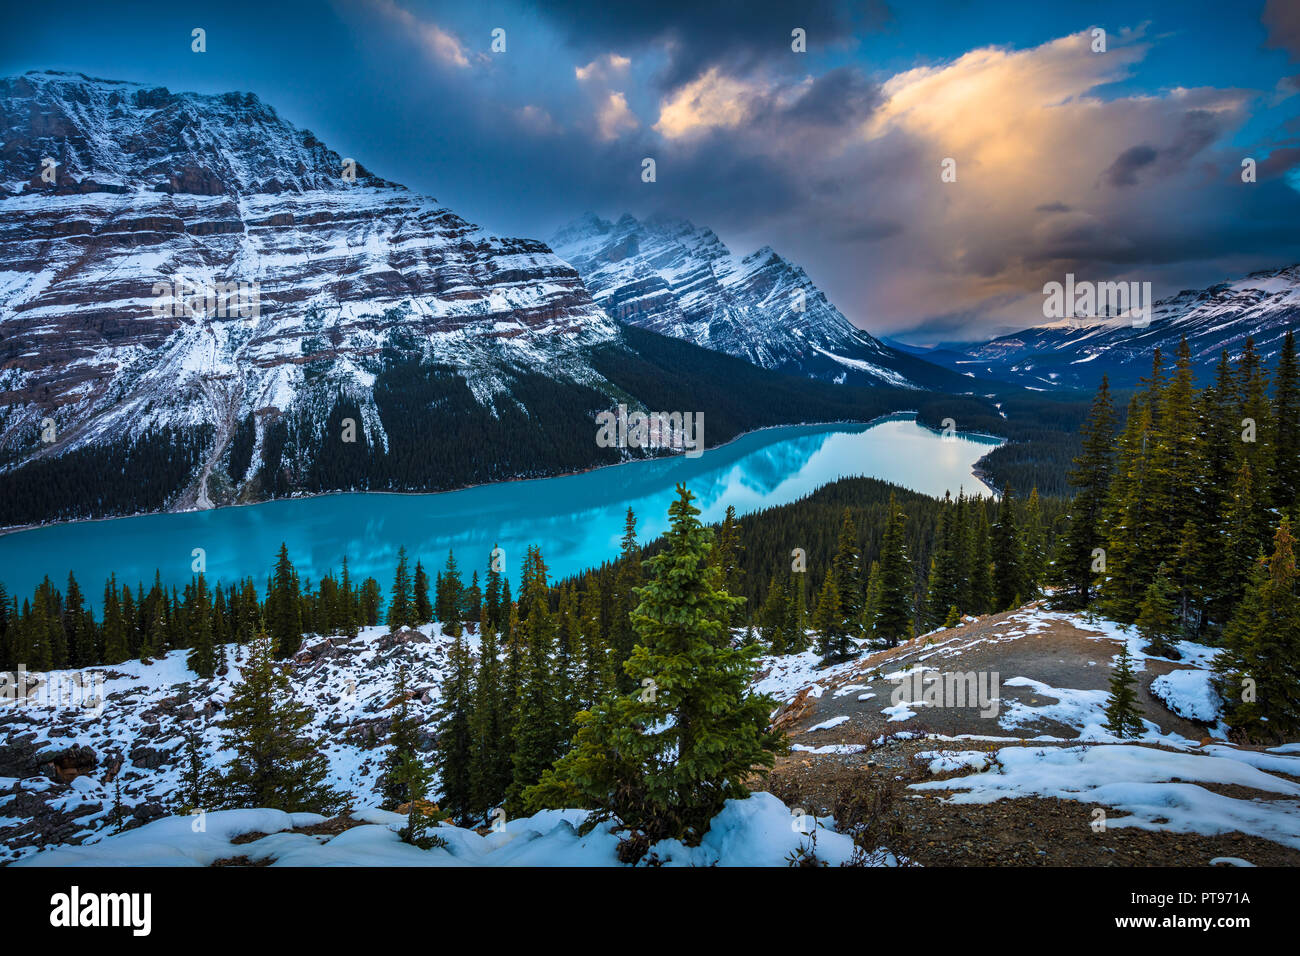 Peyto Lake is a glacier-fed lake in Banff National Park in the Canadian Rockies. The lake itself is easily accessed from the Icefields Parkway. - Stock Image